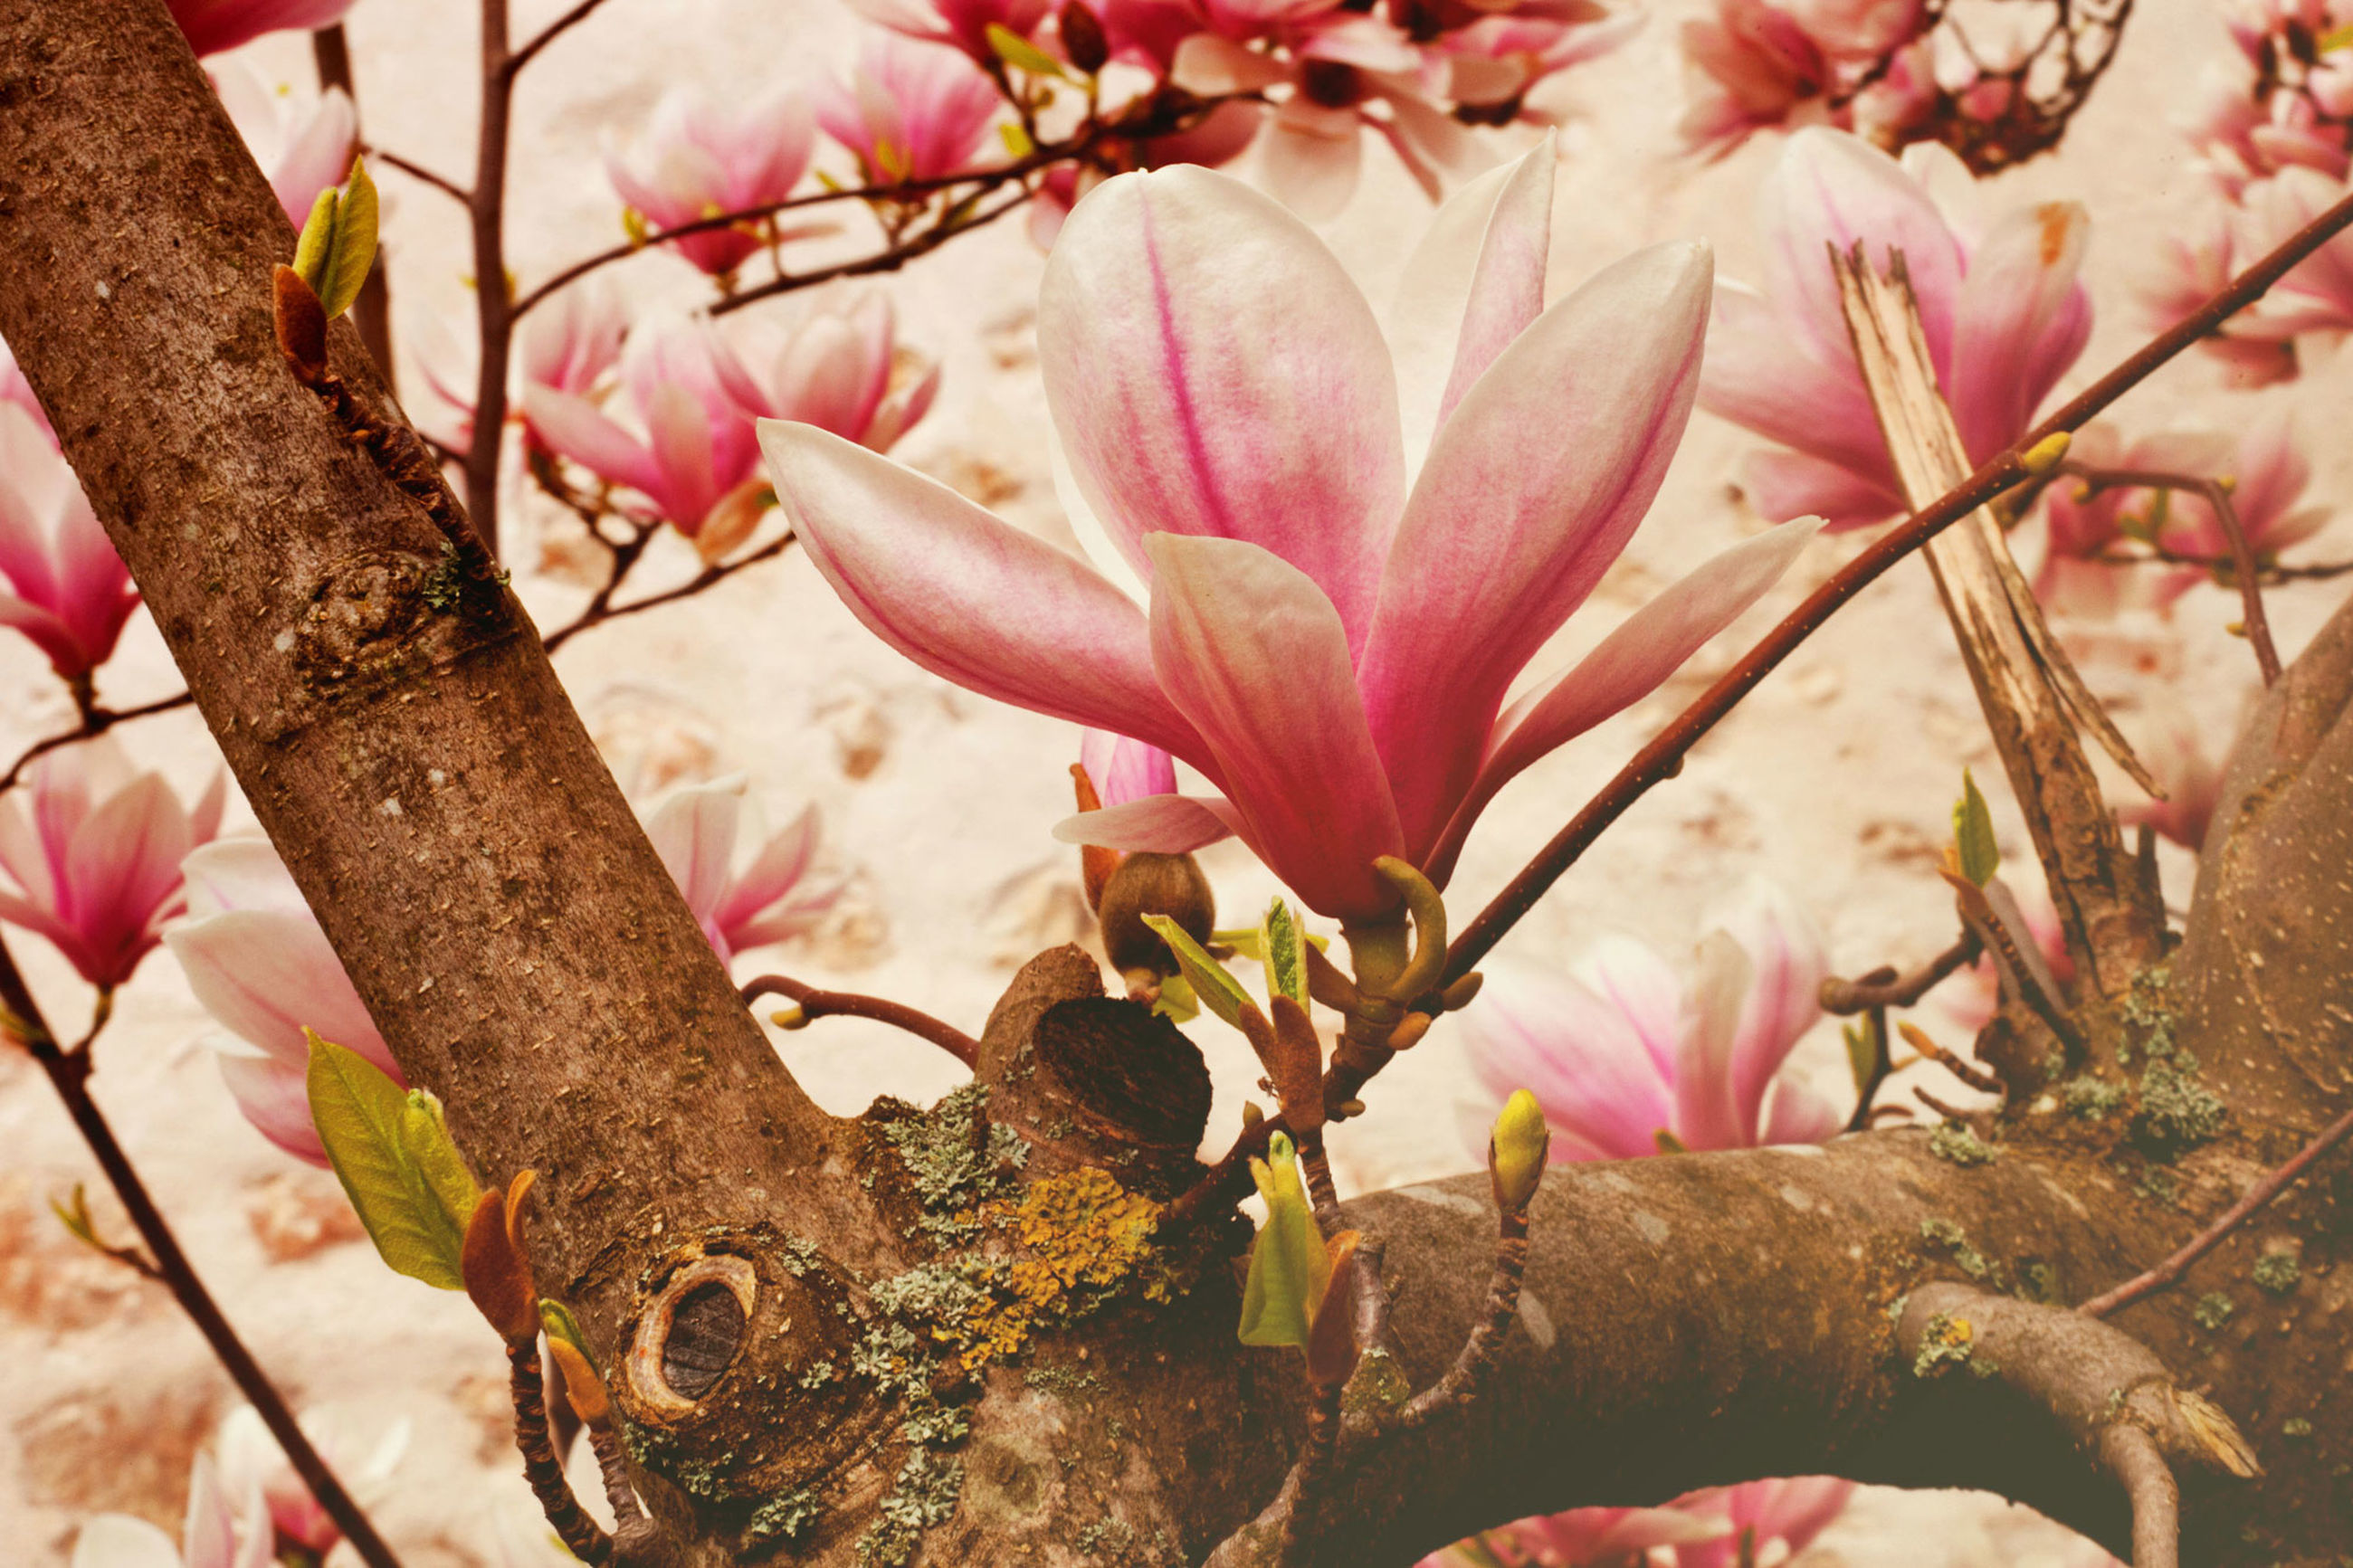 plant, flower, flowering plant, growth, pink color, tree, close-up, branch, beauty in nature, no people, nature, fragility, vulnerability, day, freshness, focus on foreground, outdoors, petal, selective focus, springtime, cherry blossom